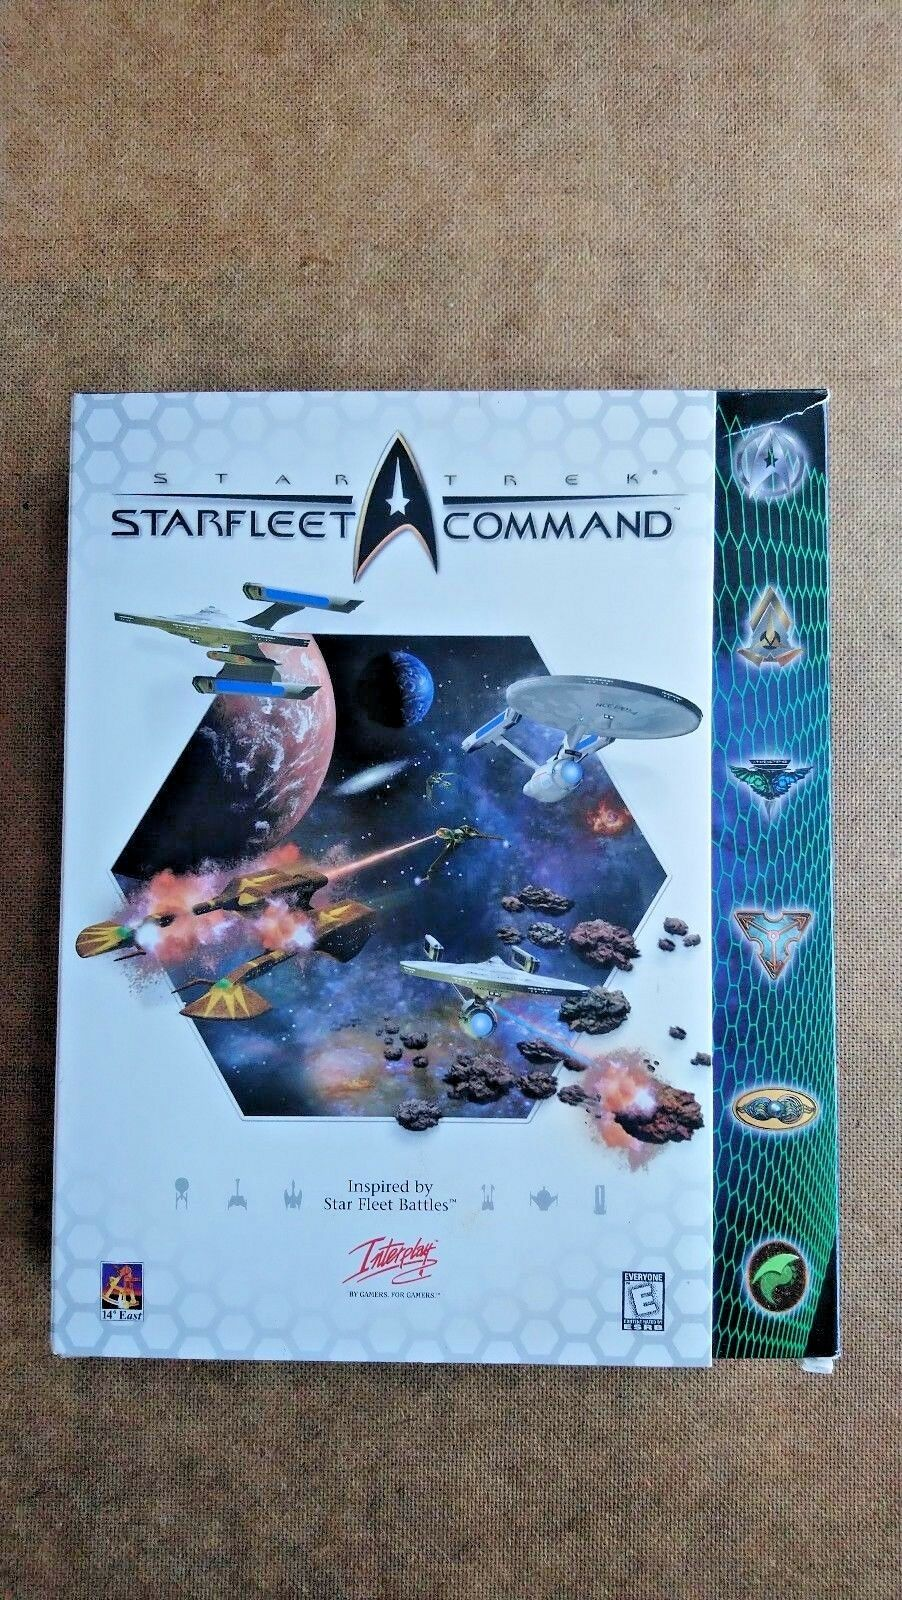 Star Trek: Starfleet Command (PC: Windows, 1999) - Big Box Edition